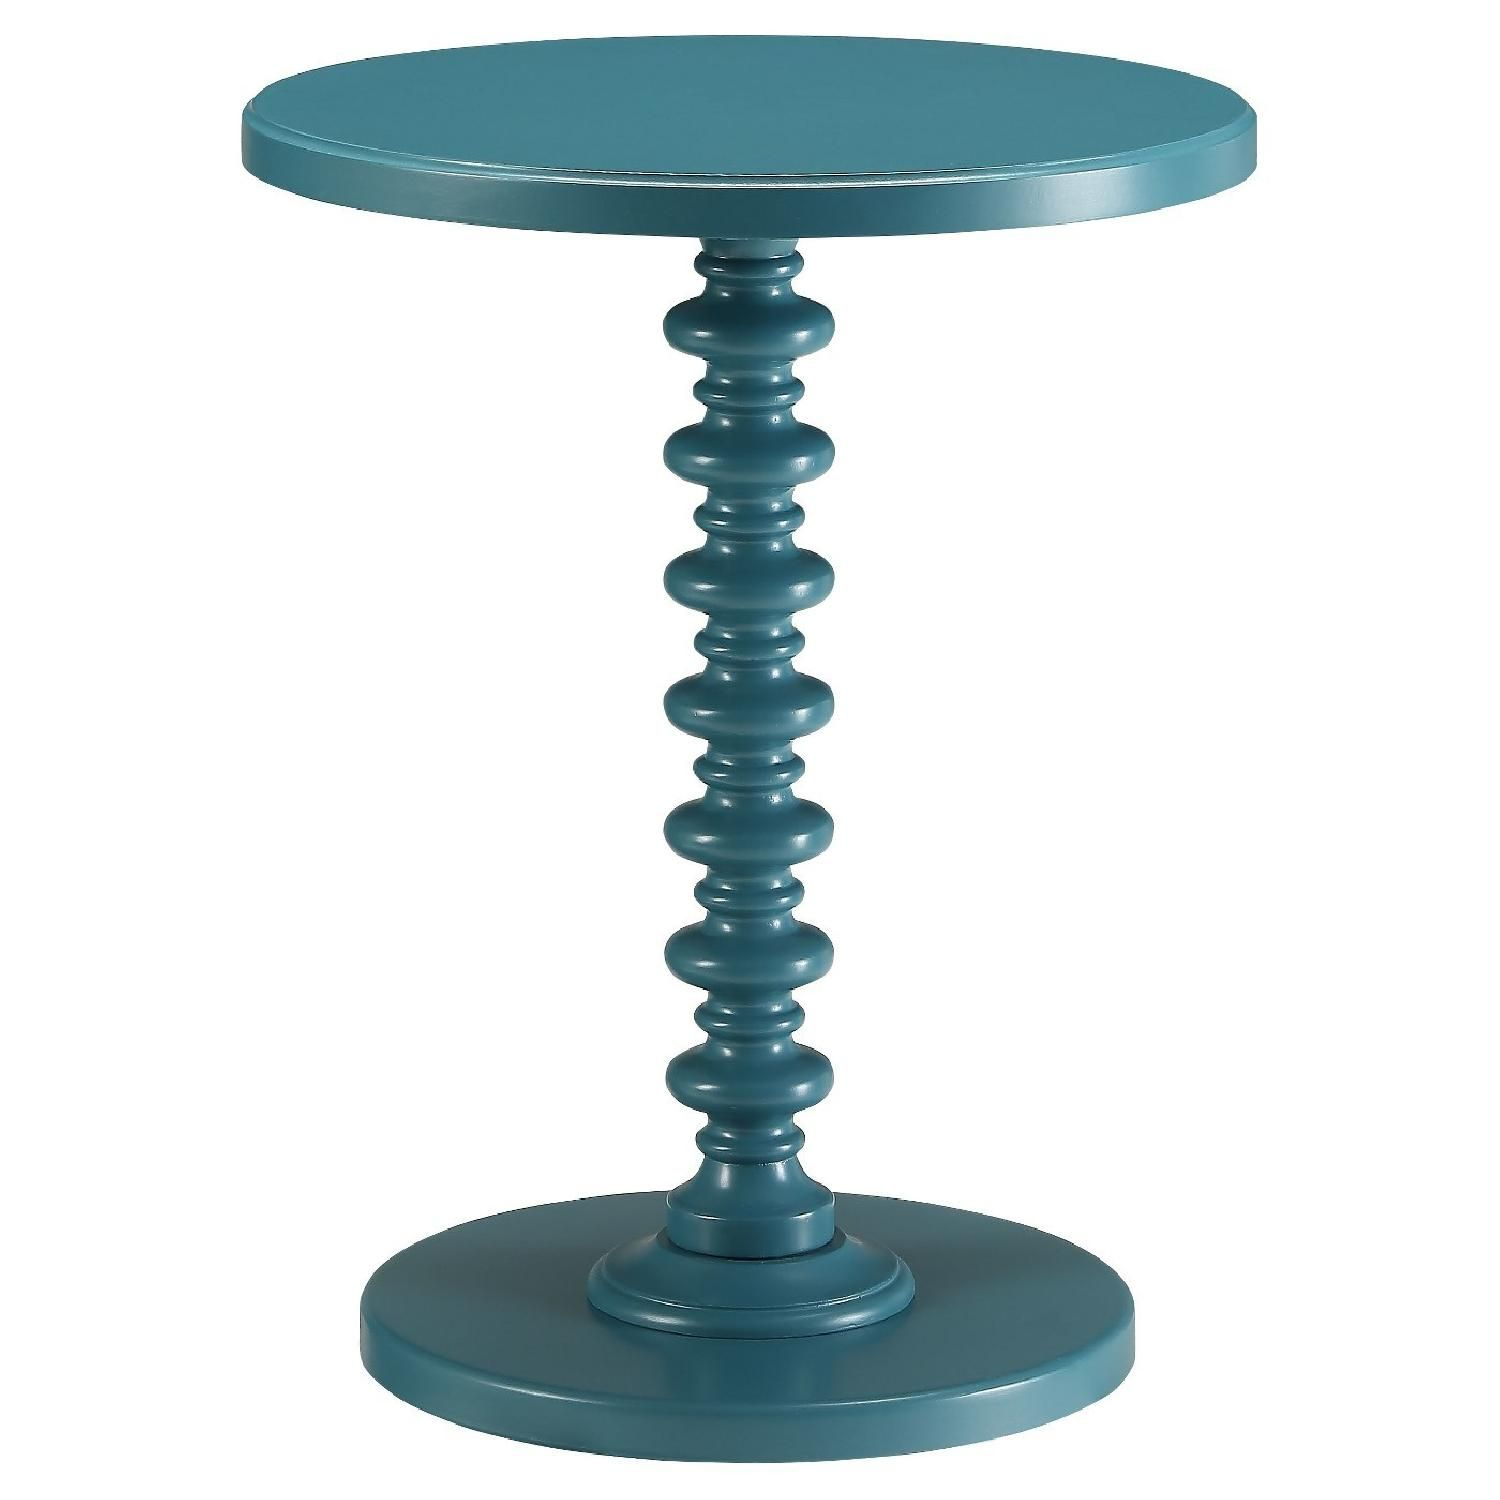 target acton side table blue nyc life margate accent bargain garden furniture ikea round glass safavieh distressed wood coffee threshold bunnings cane chairs small leather